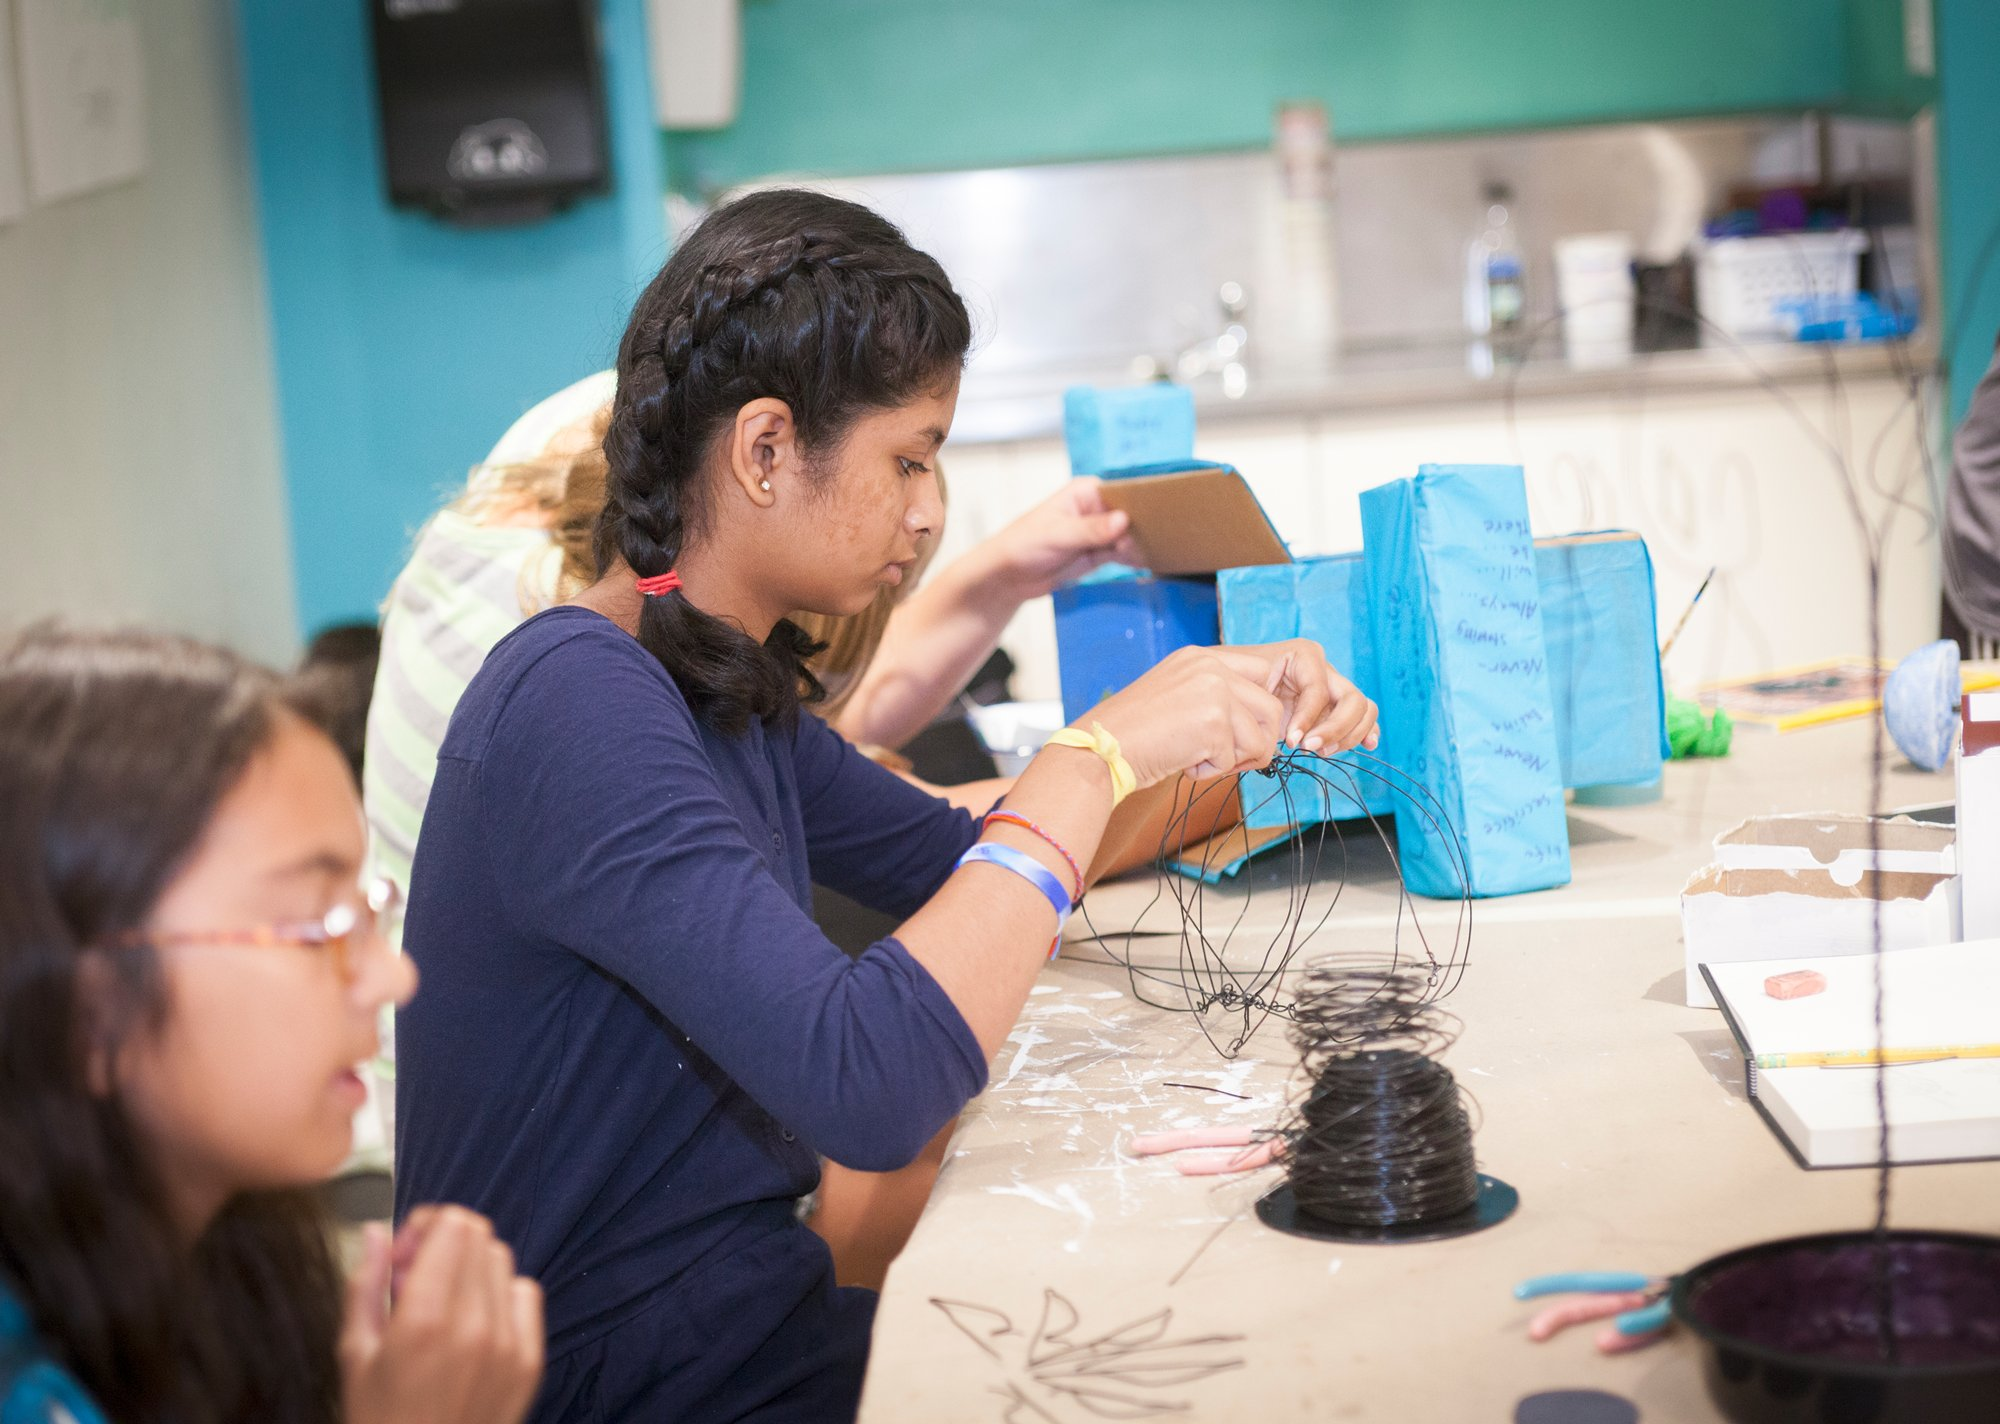 Two students in blue shirts sculpt with wire in Mia's studio classroom.